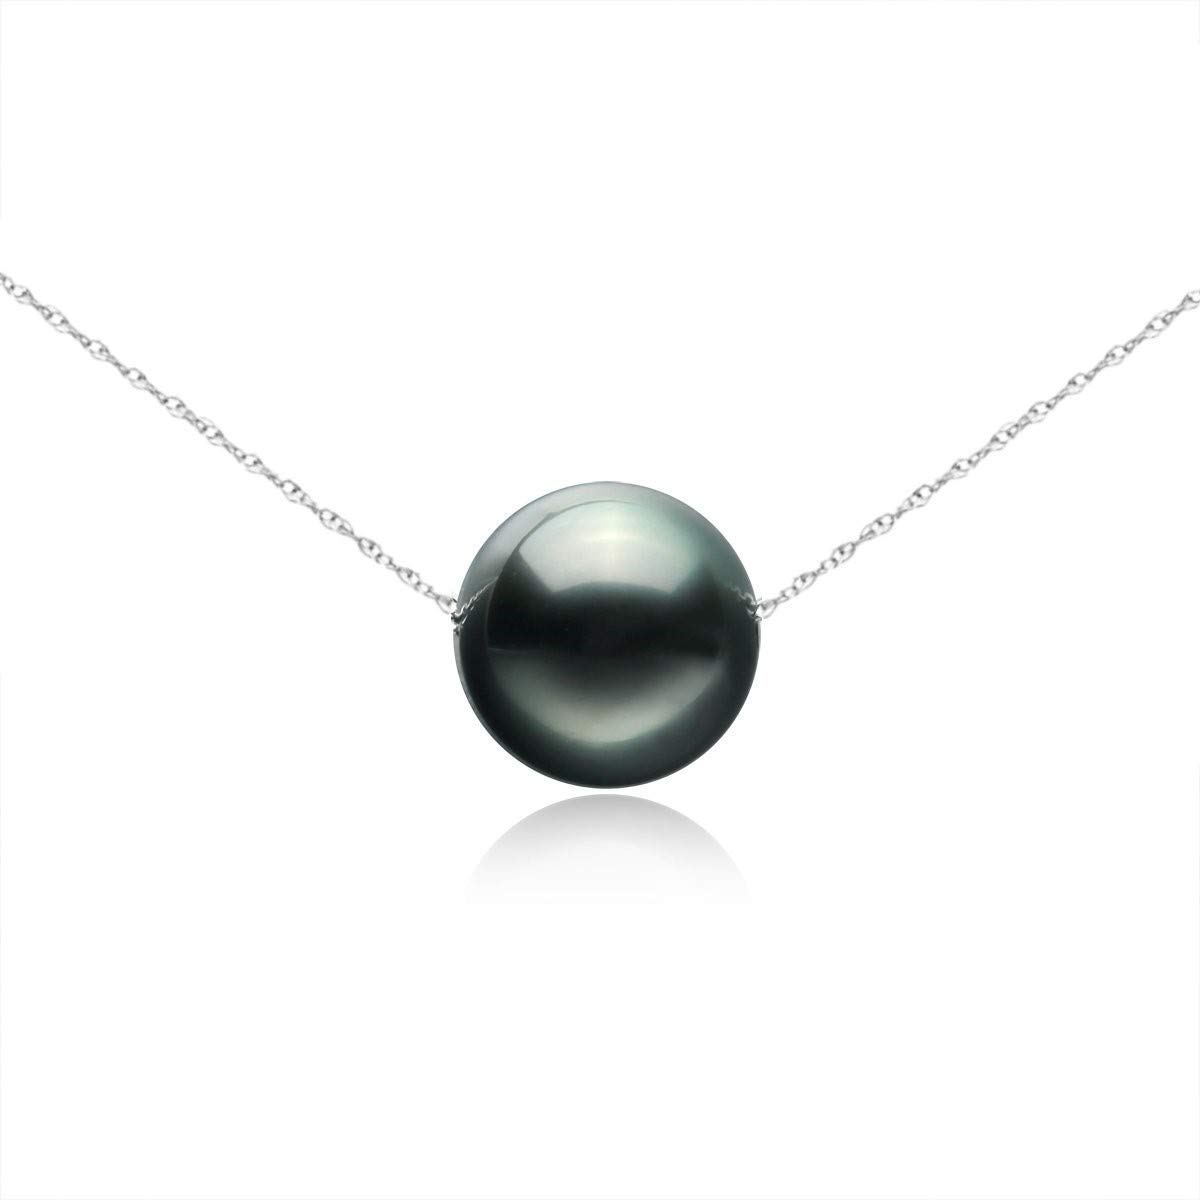 14K Gold 8-9mm Tahitian South Sea Cultured Floating Pearl Tin Cup Chain Necklace Jewelry for Women 17'' by Splendid Pearls